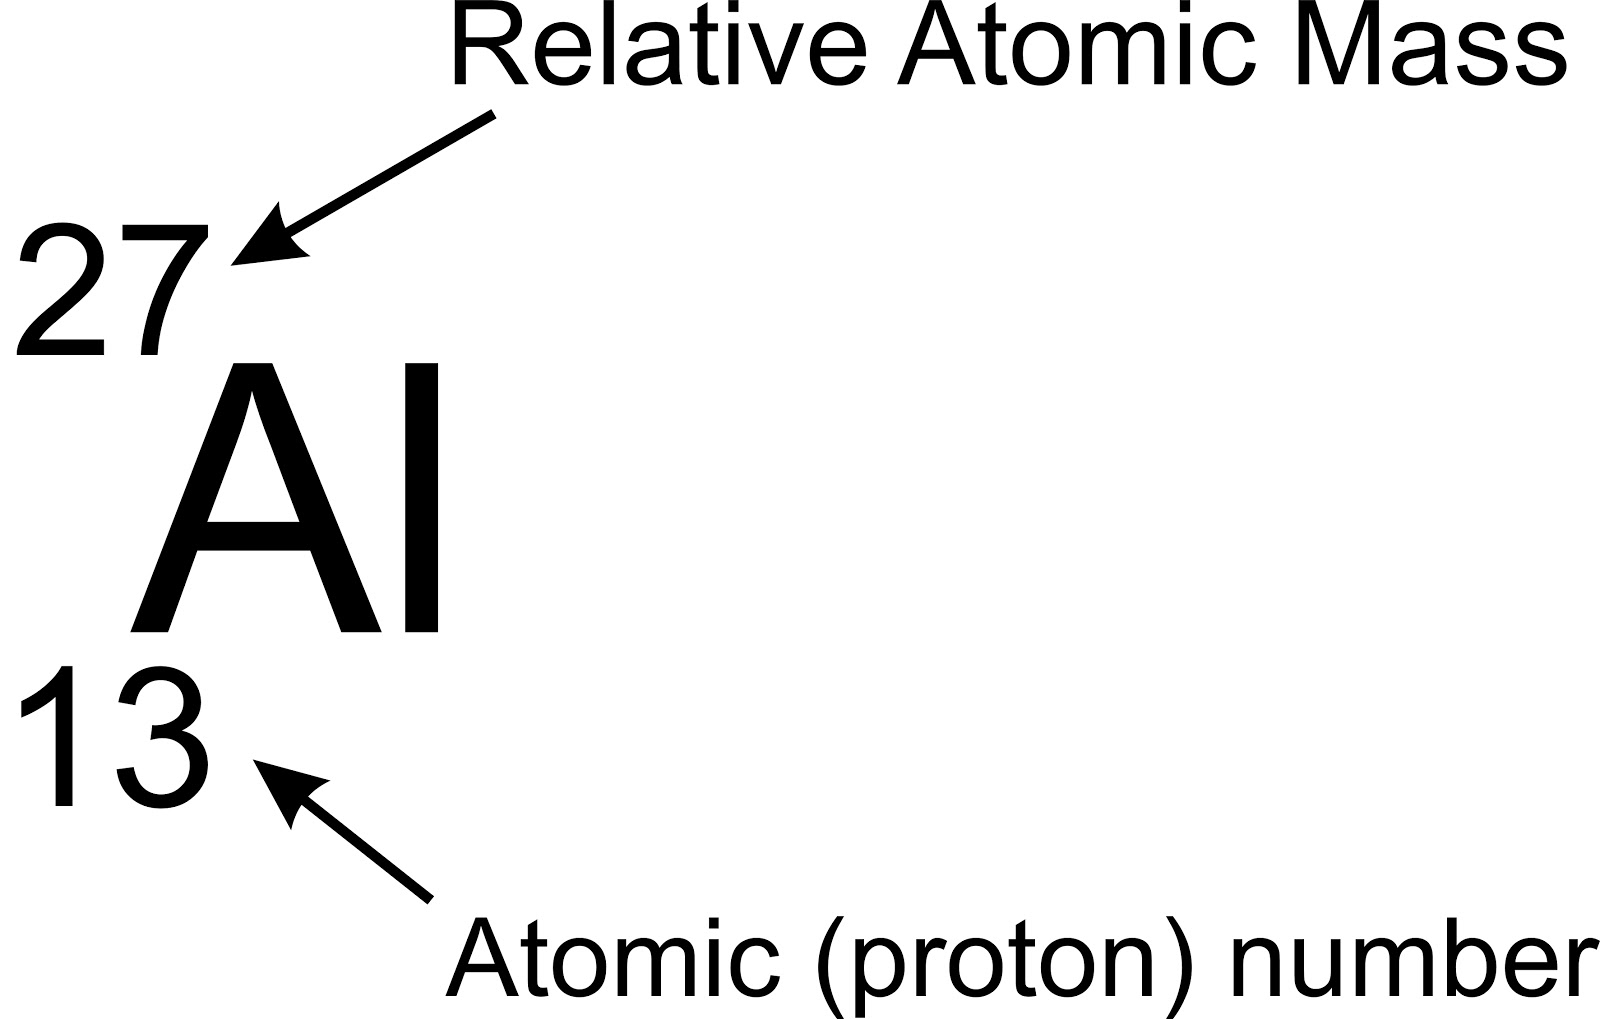 Tutorials from denzell cooper the atom the number at the bottom is the atomic number or proton number this tells us how many protons there are in one atom of the element this is very important urtaz Images